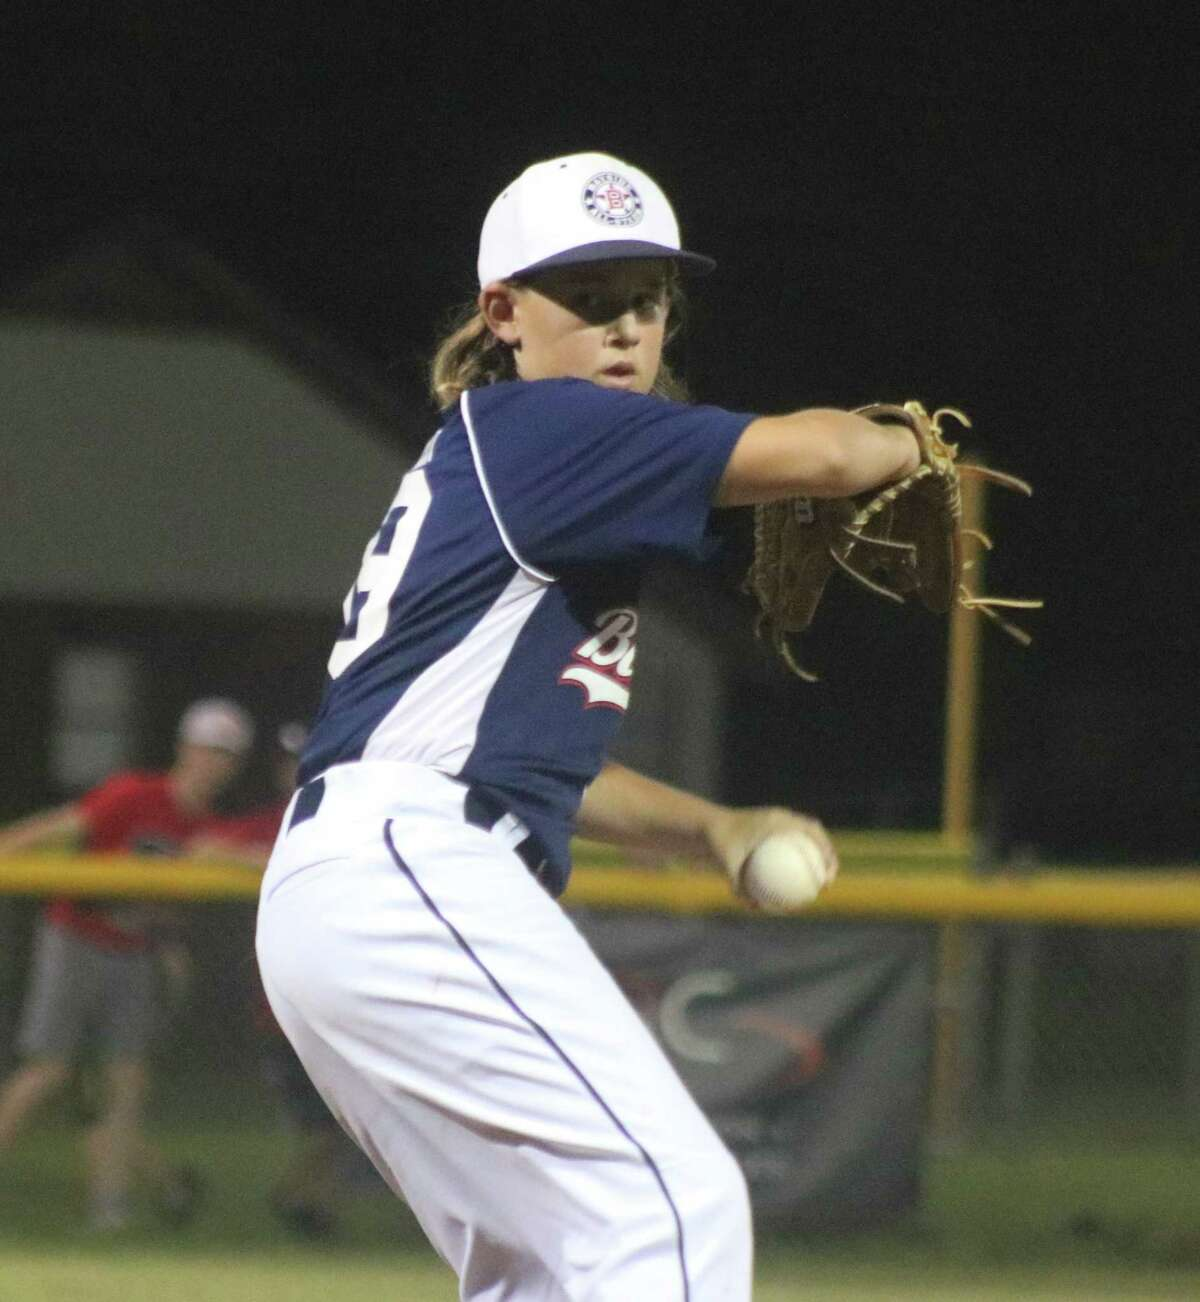 Bayside's Jake Berry worked four effective innings. He managed to prevent three walks in the opening two innings from hurting his cause.